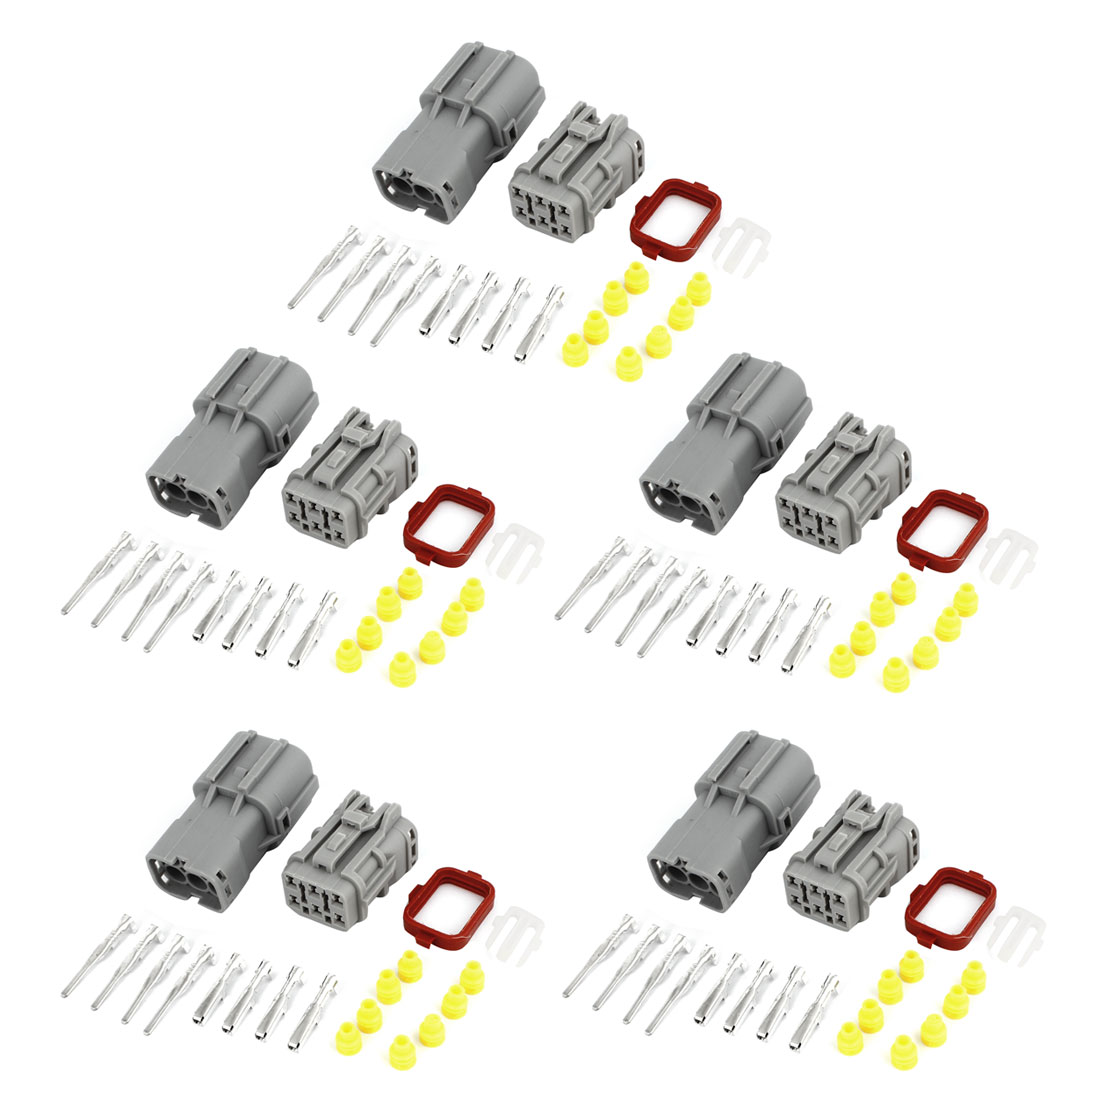 5 Set Sealed Waterproof Connector Kit 1.8mm Terminal Heat Sockets Gray for Car Auto